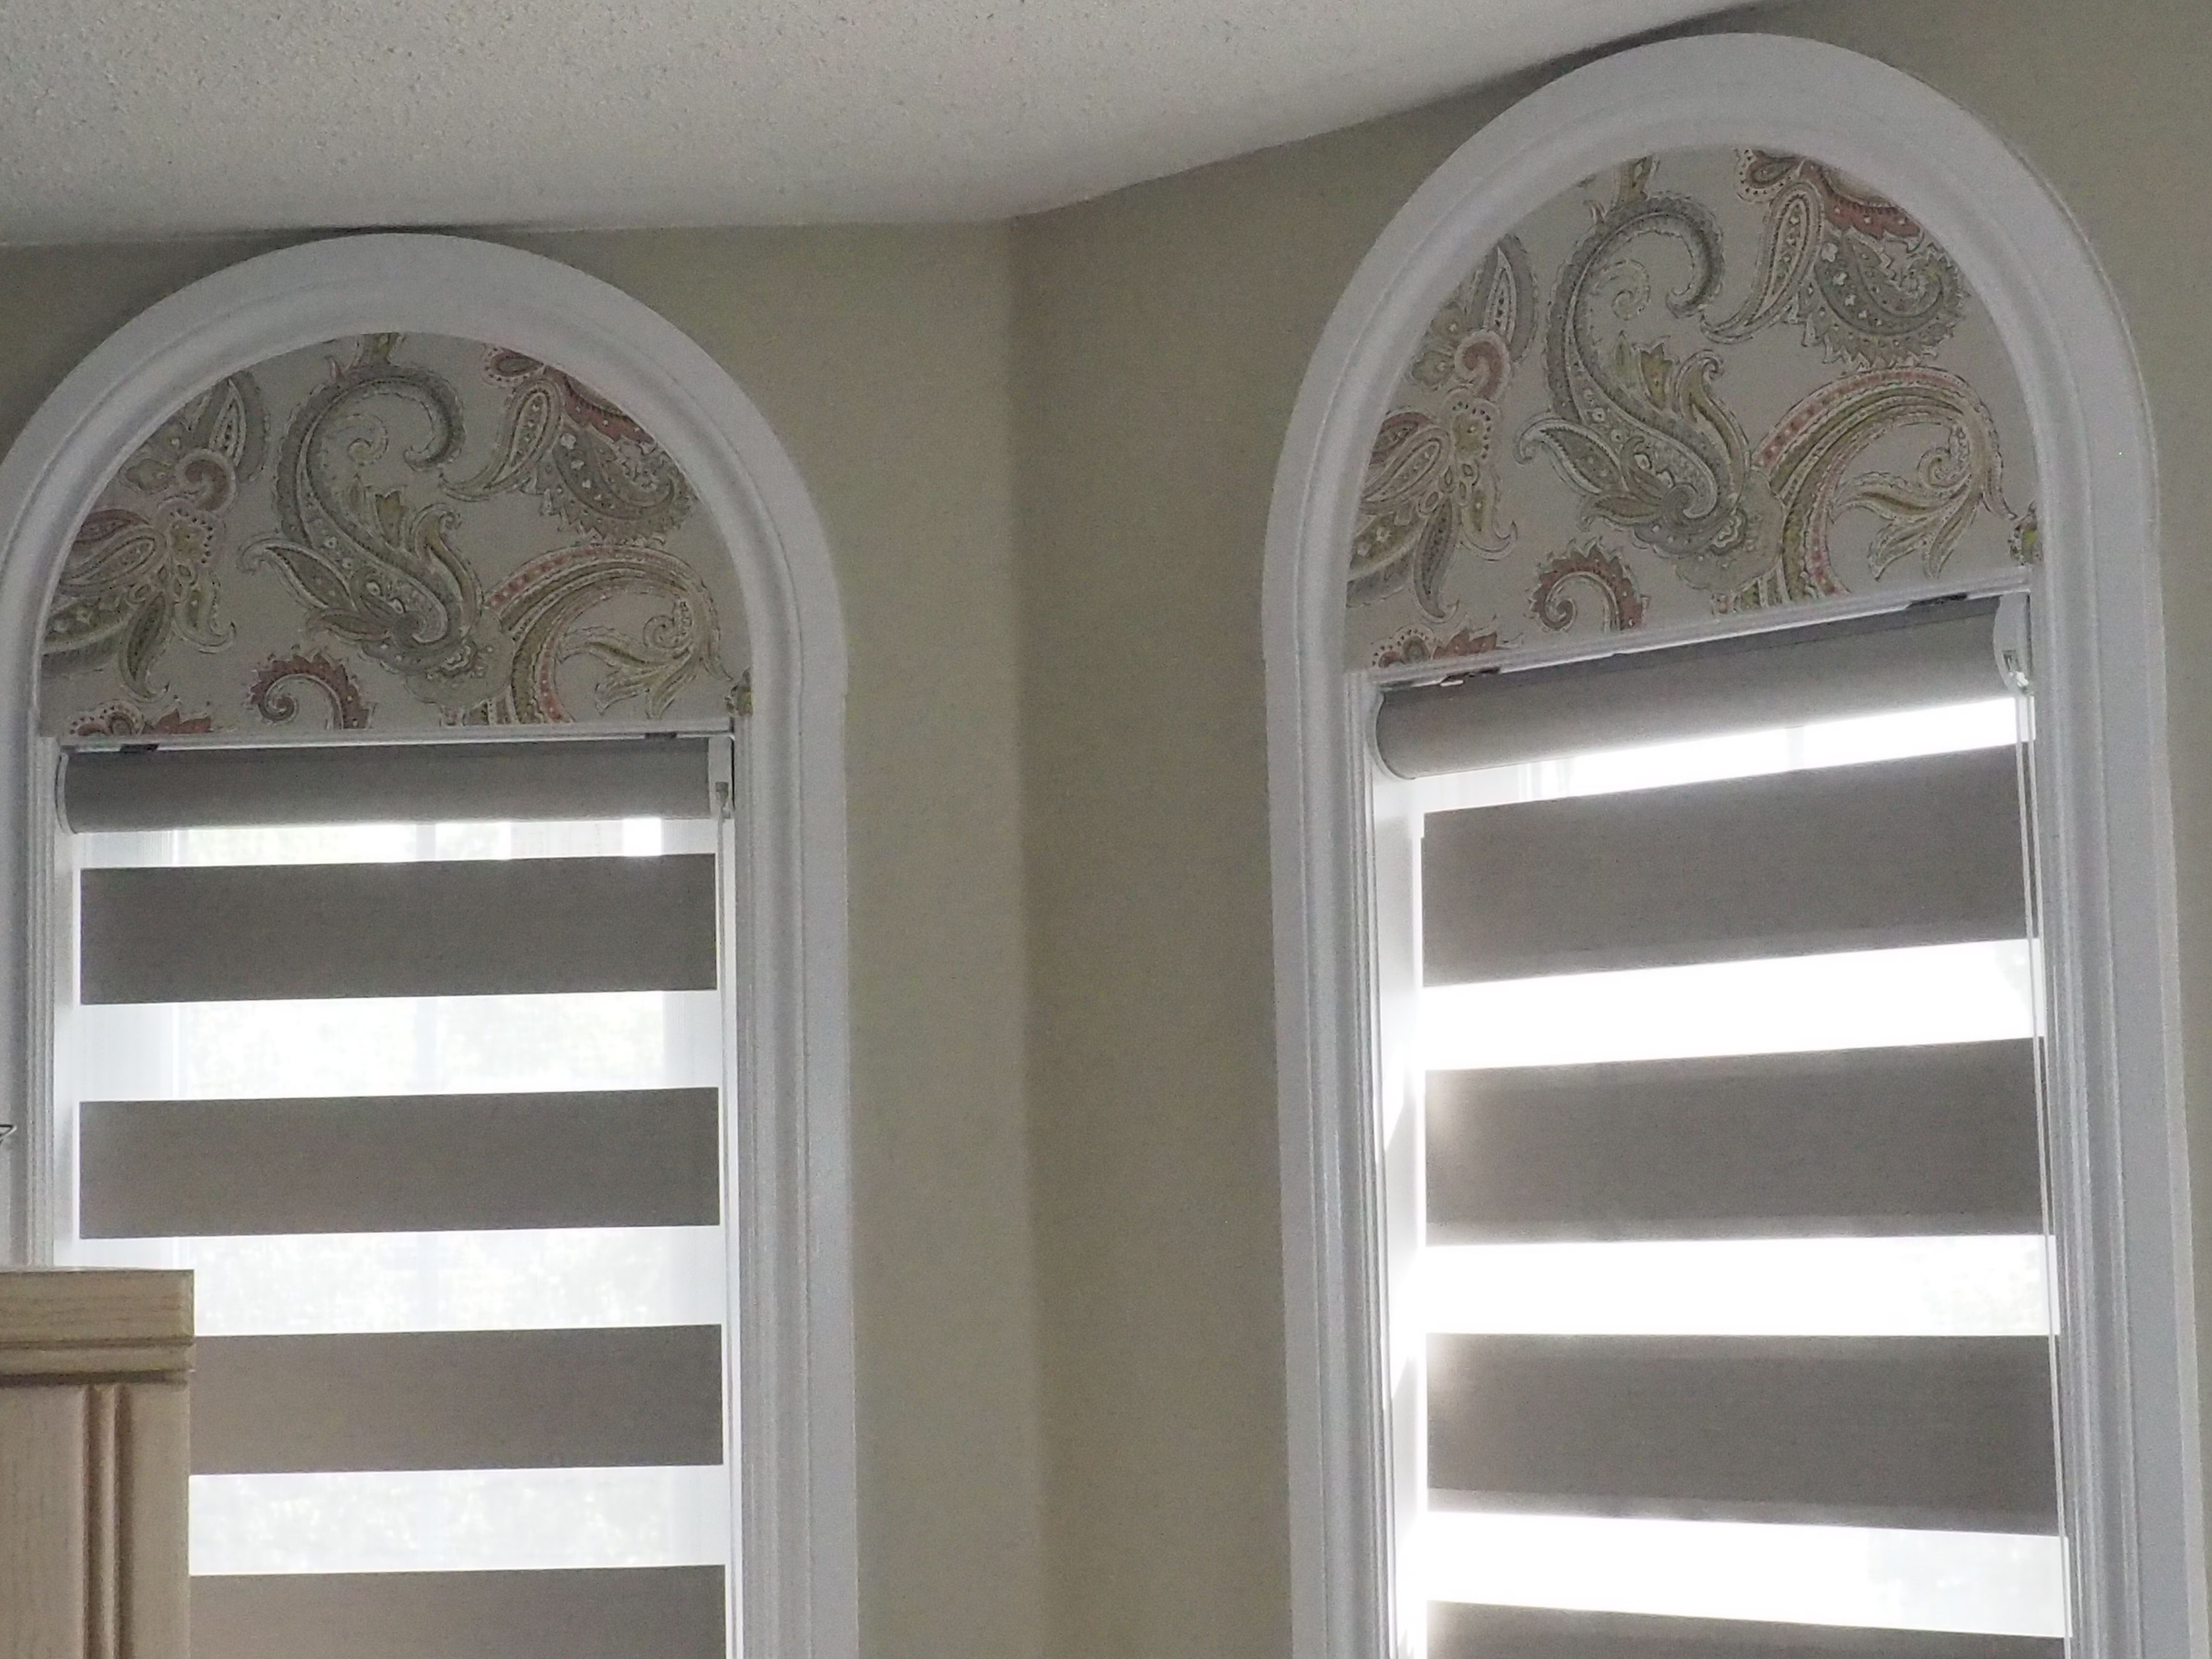 Window treatments for arched windows - Remarkable Arch Window Coverings Toronto Blinds Together With Blackout Flat Arch Window